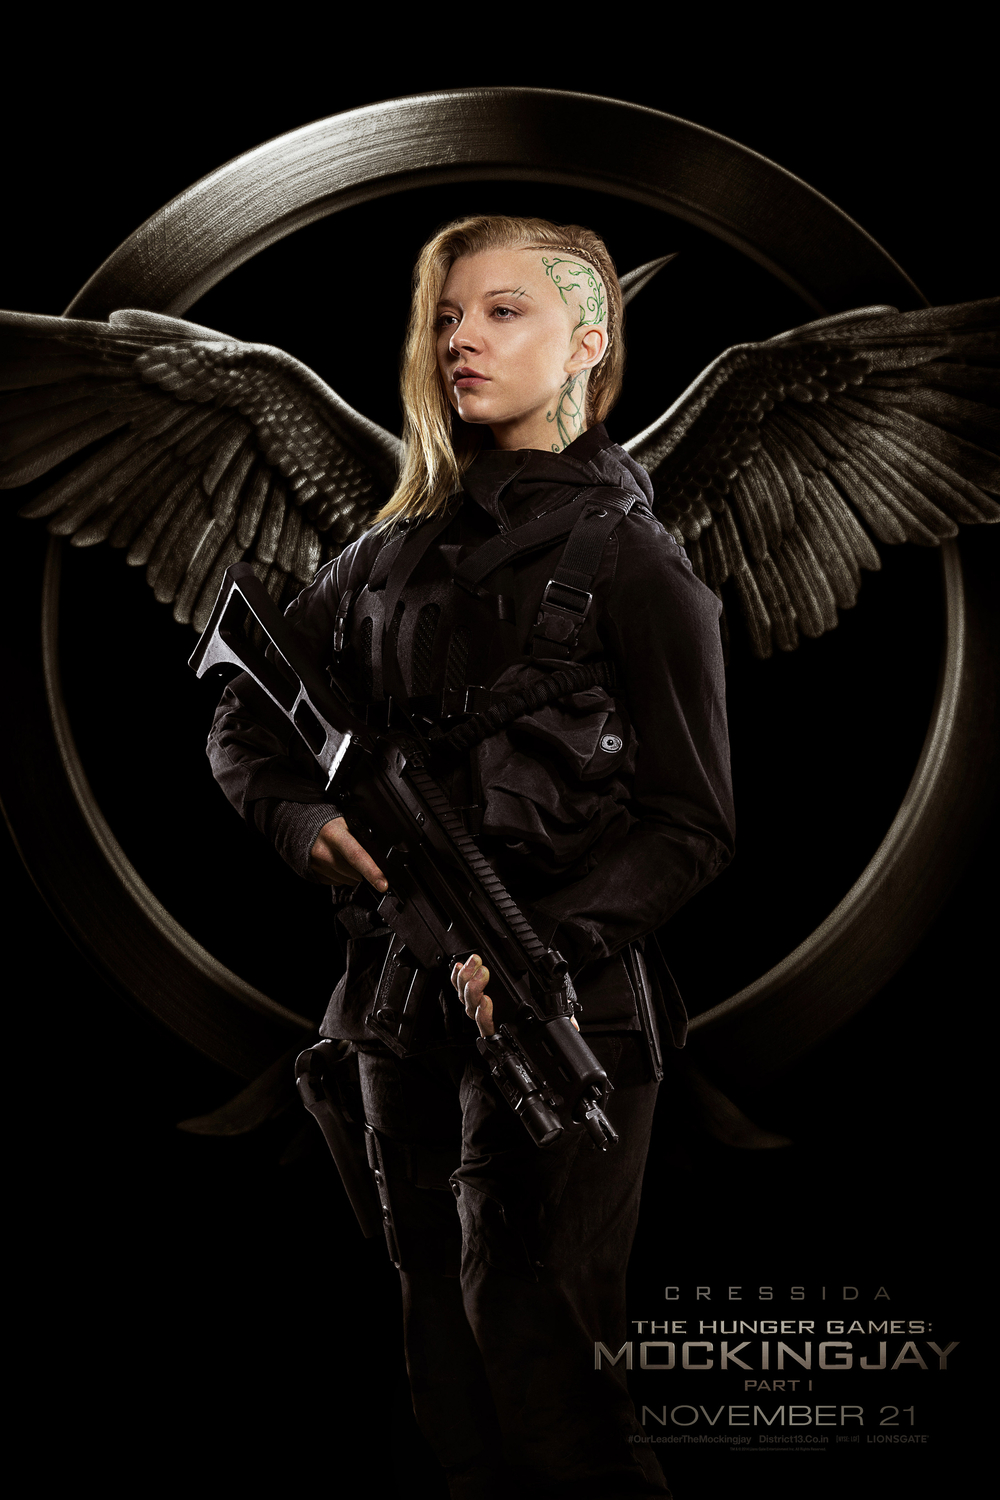 The Hunger Games: Mockingjay - Part 1 (2014) - IMDb